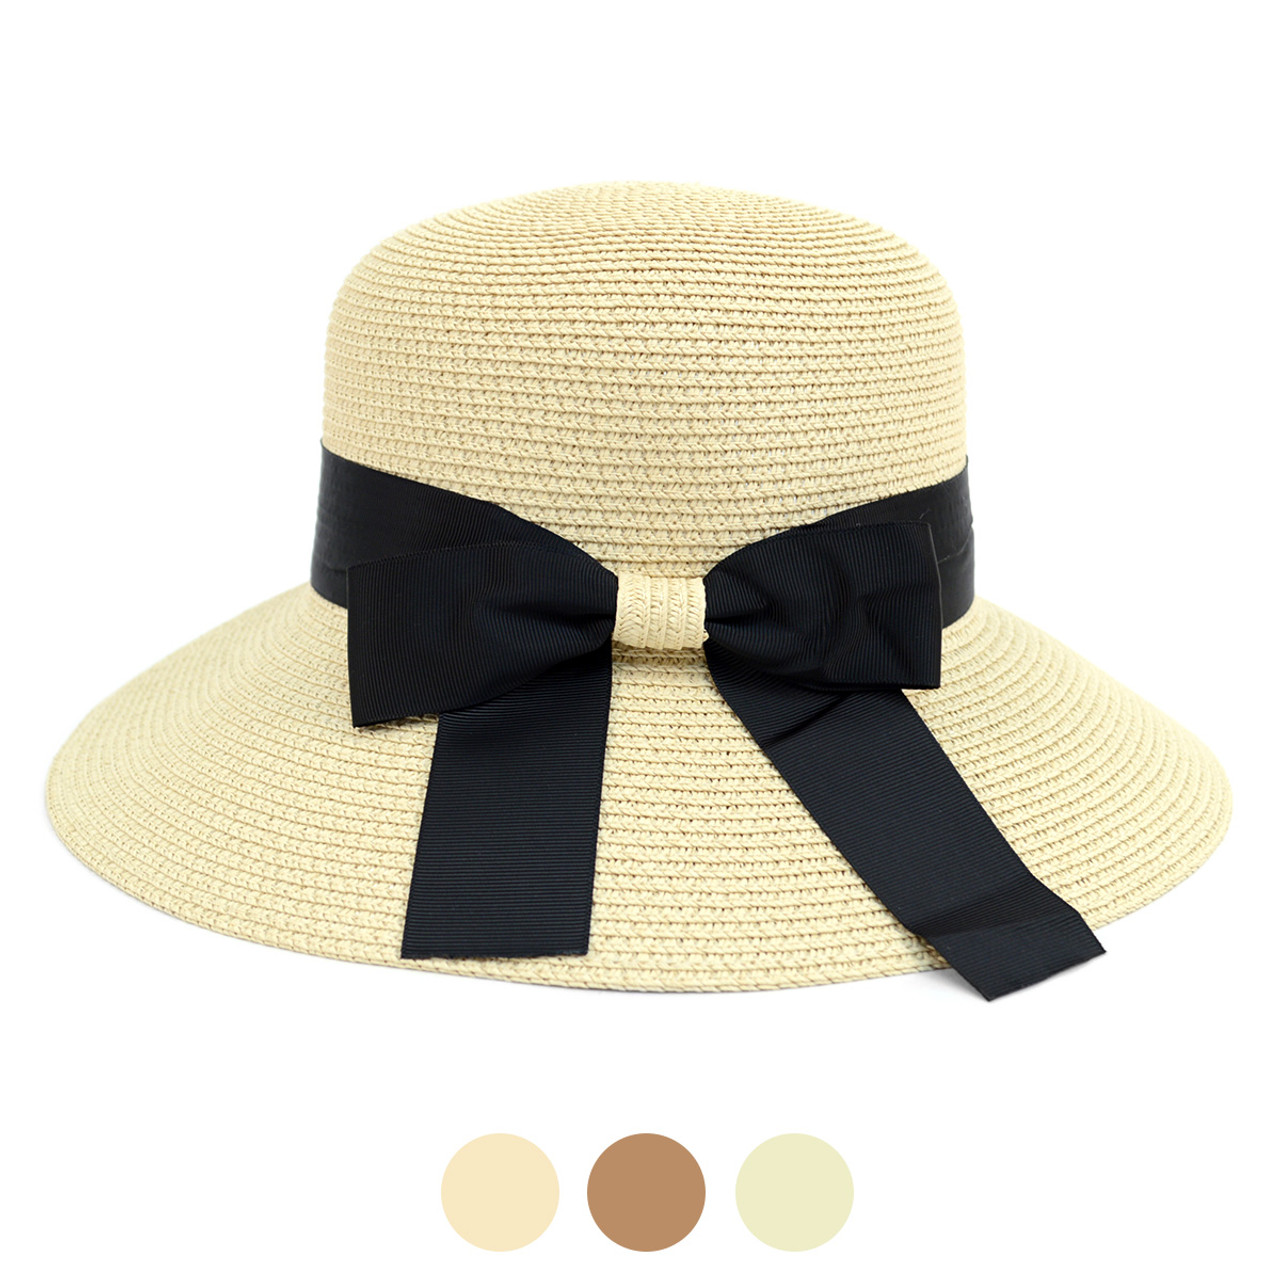 f982cba17ad462 Women's Floppy Sun Hat with Ribbon Bow-knot - LFH180502